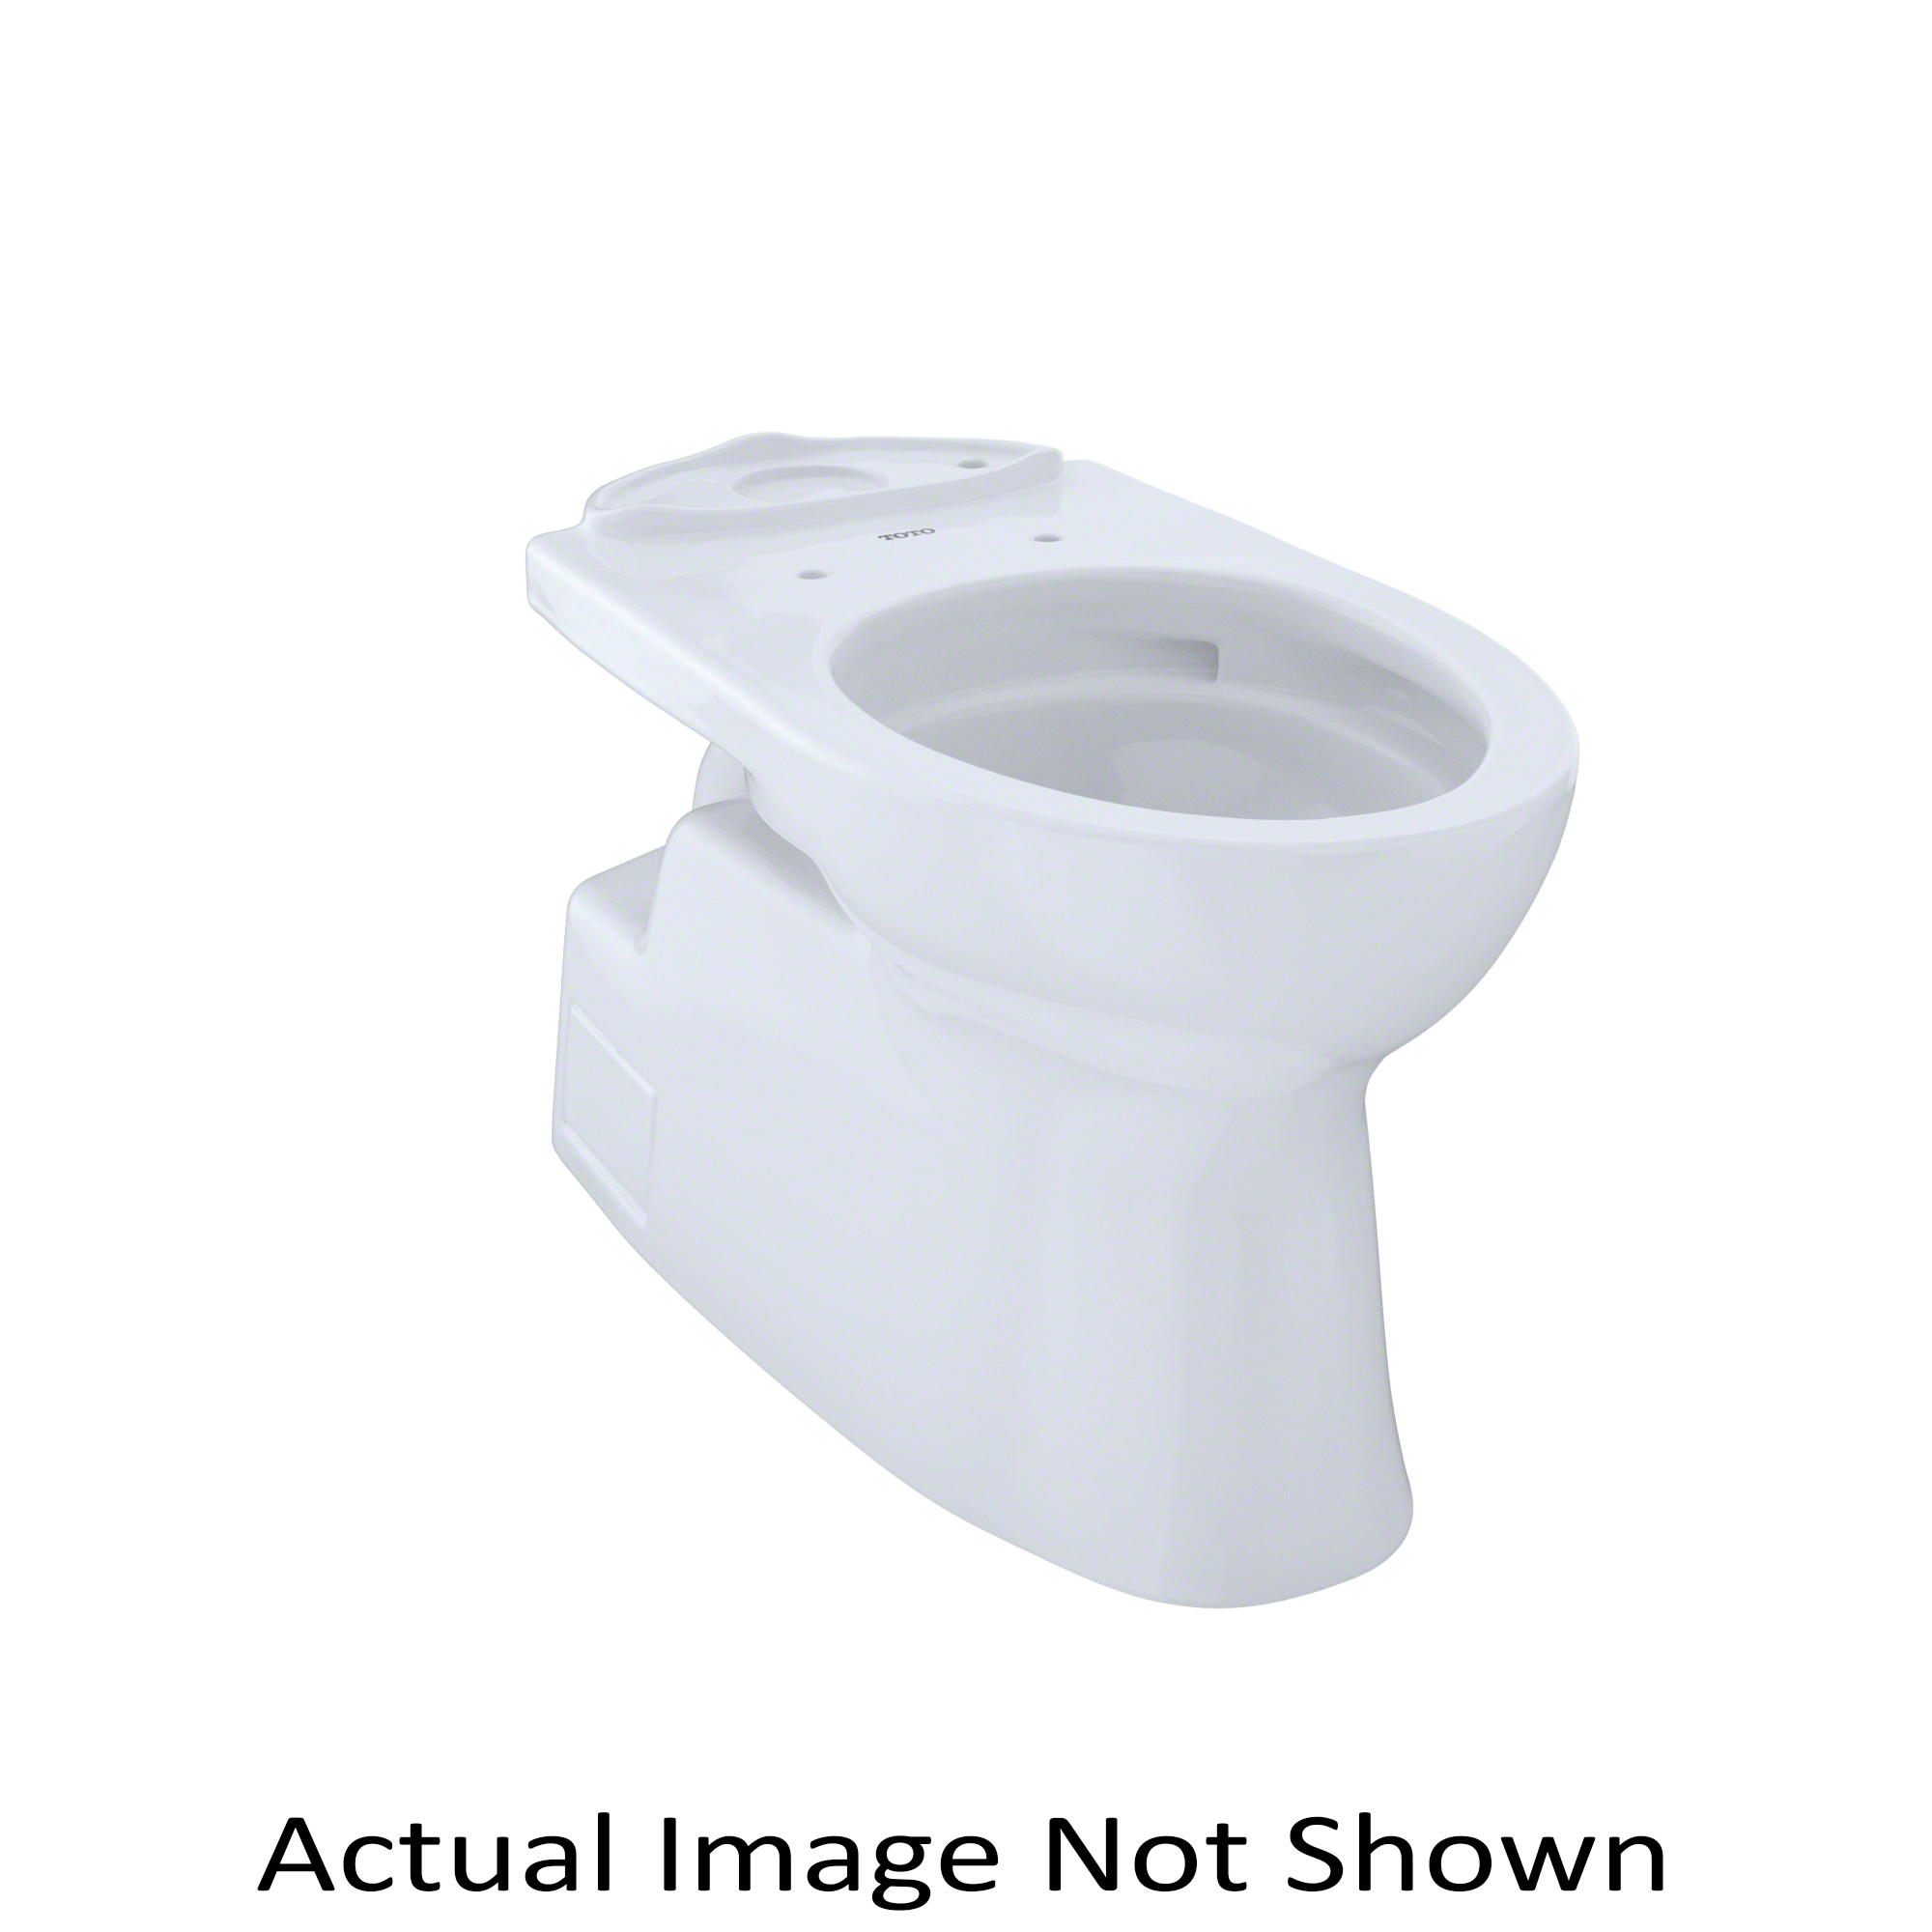 Toto® CT474CUFG#01 Vespin® II Toilet Bowl, Elongated Front, 6-7/8 x 9-3/4 in Water Surface, 17-1/4 in H Rim, 2-1/8 in Trapway, Domestic